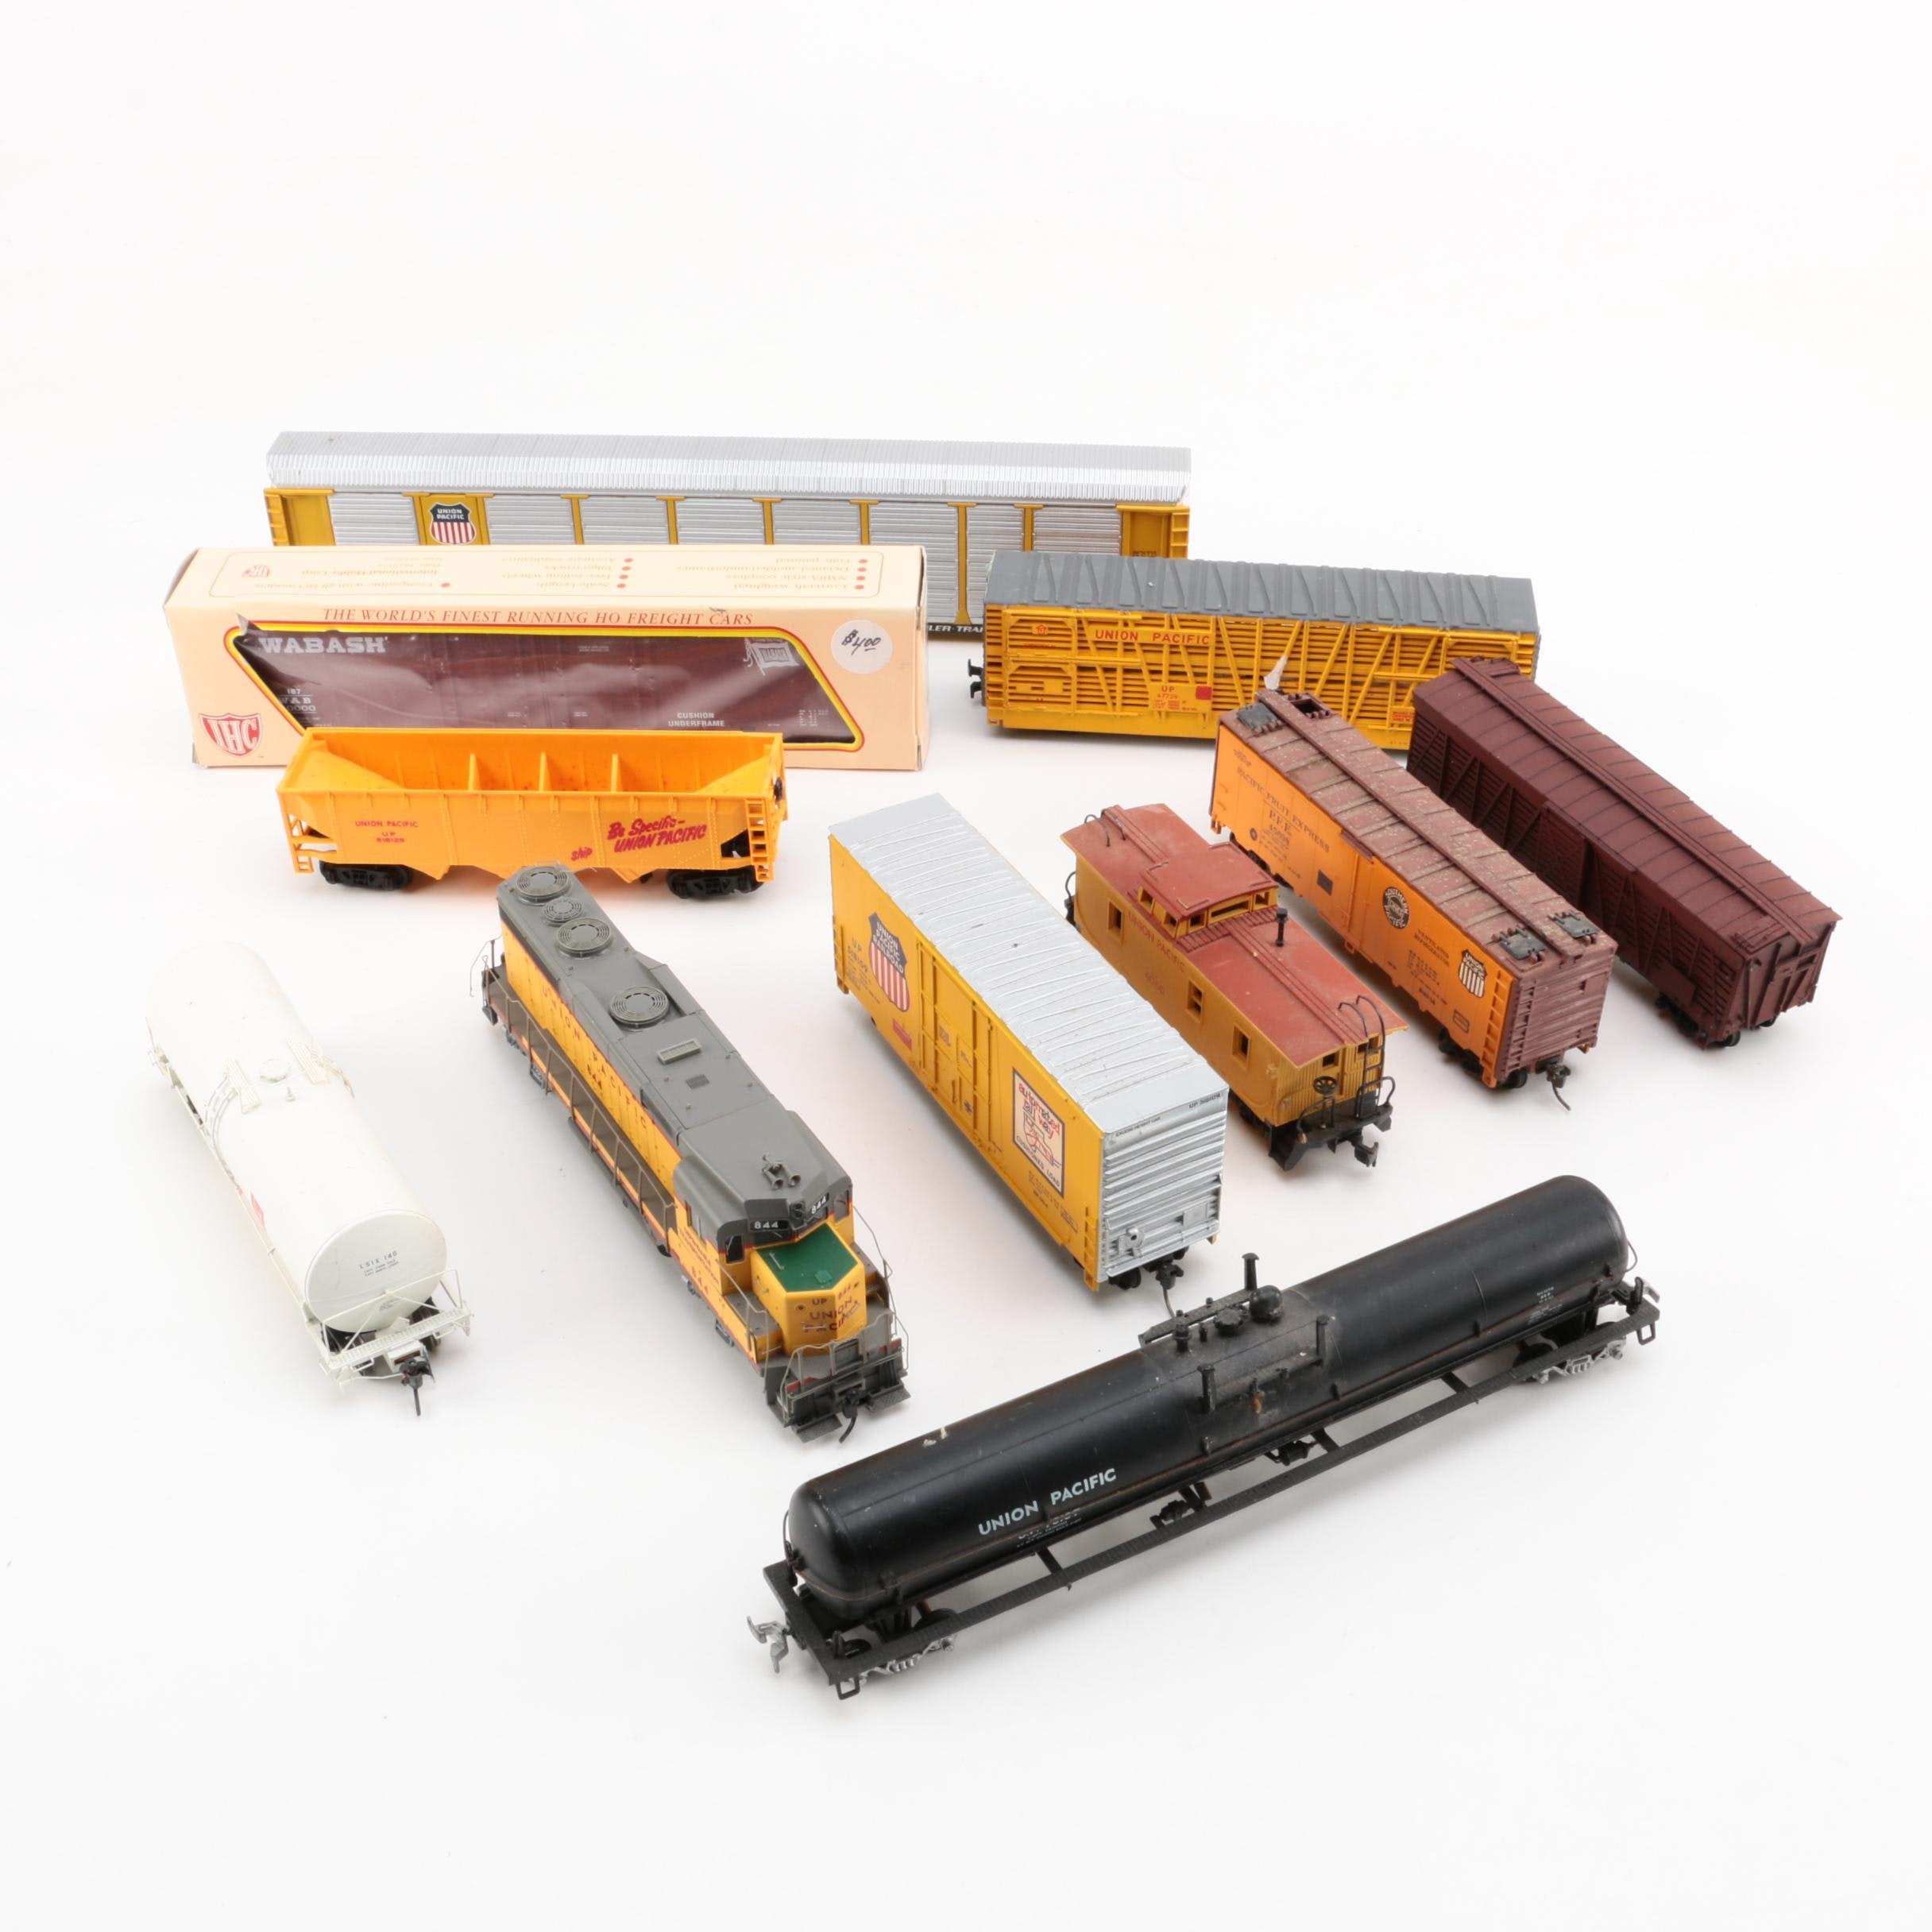 Union Pacific HO Scale Train Set Assortment